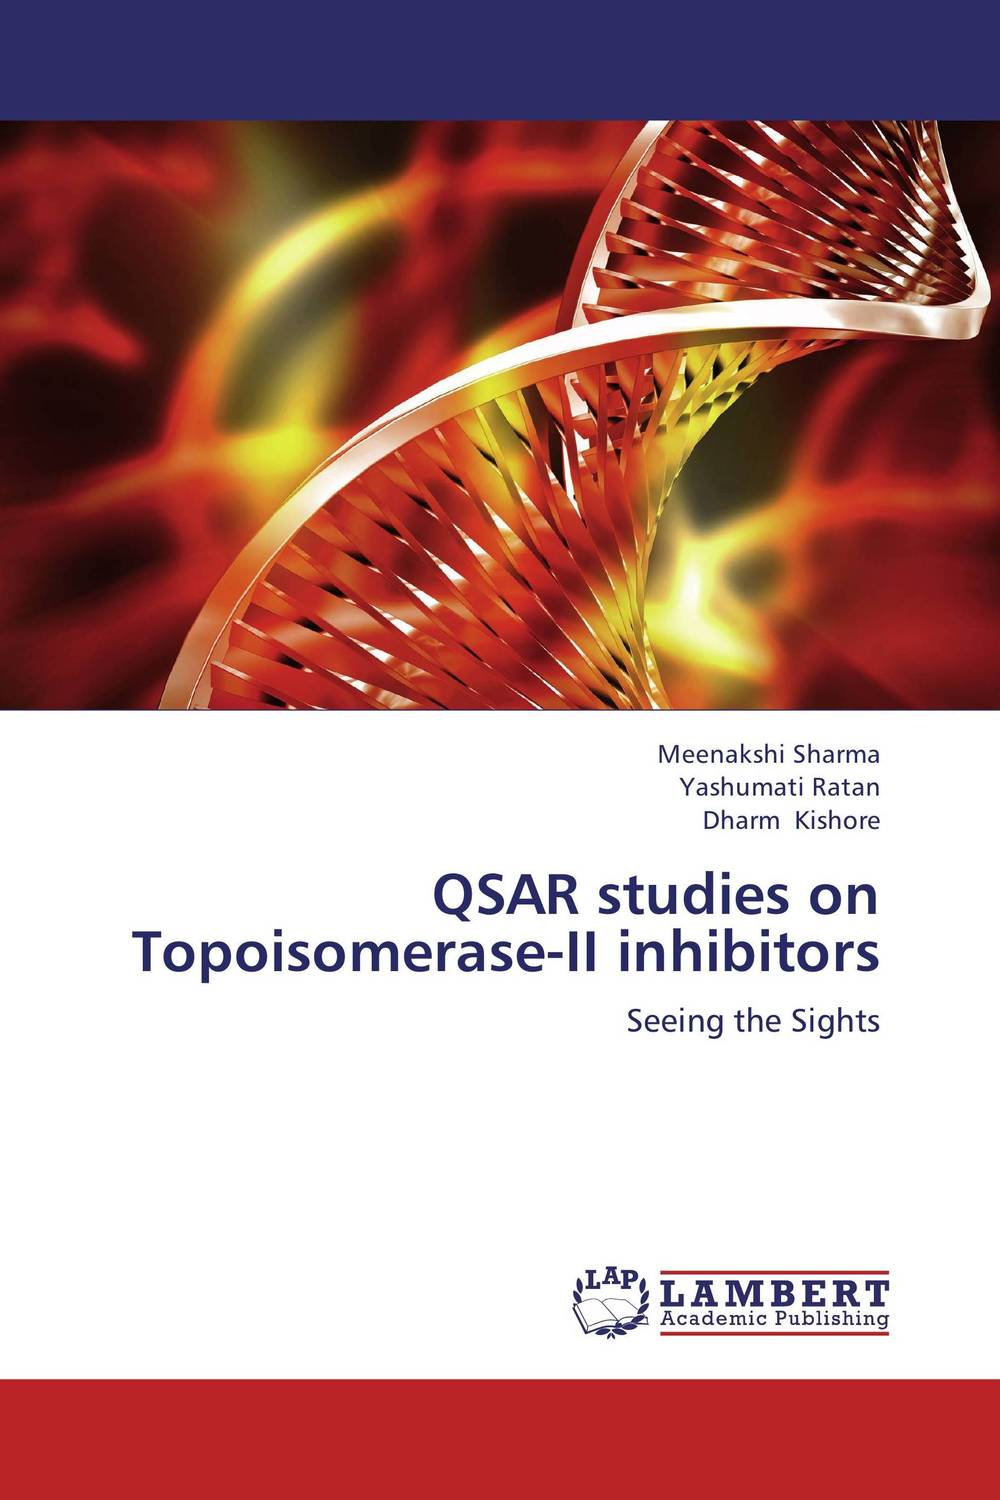 QSAR studies on Topoisomerase-II inhibitors drug discovery and design